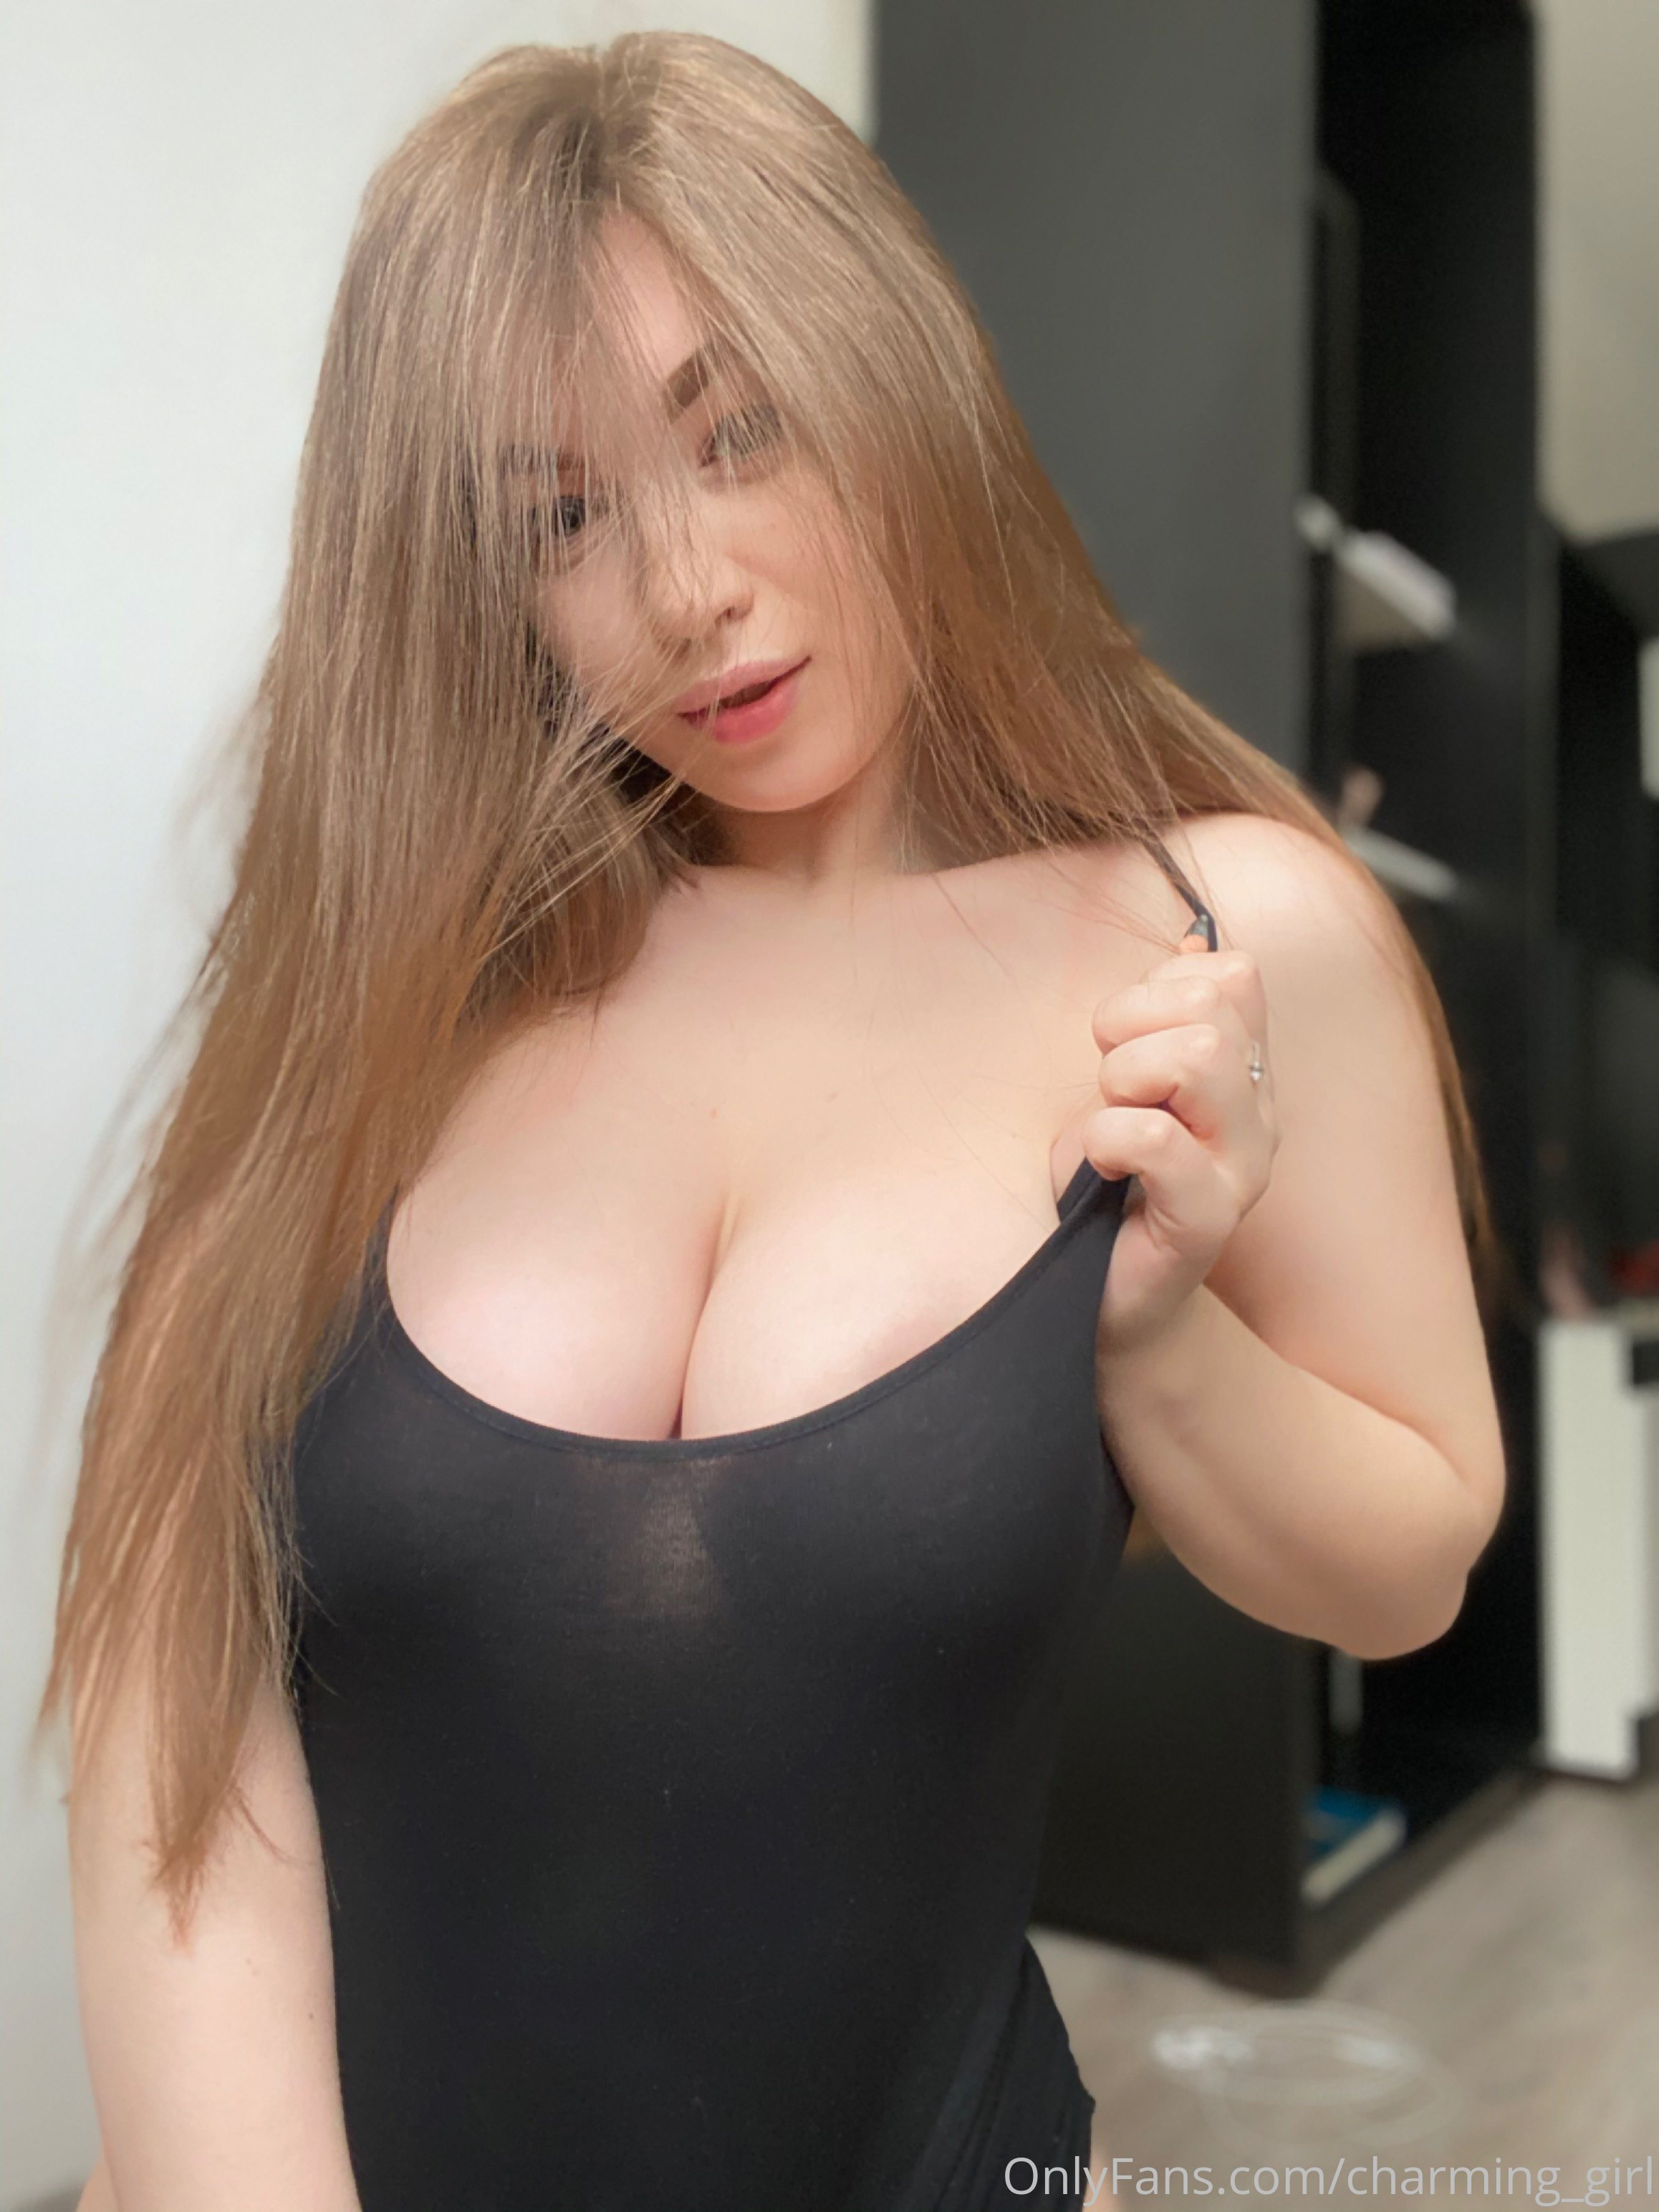 Milana, Charming Girl, Onlyfans 0007